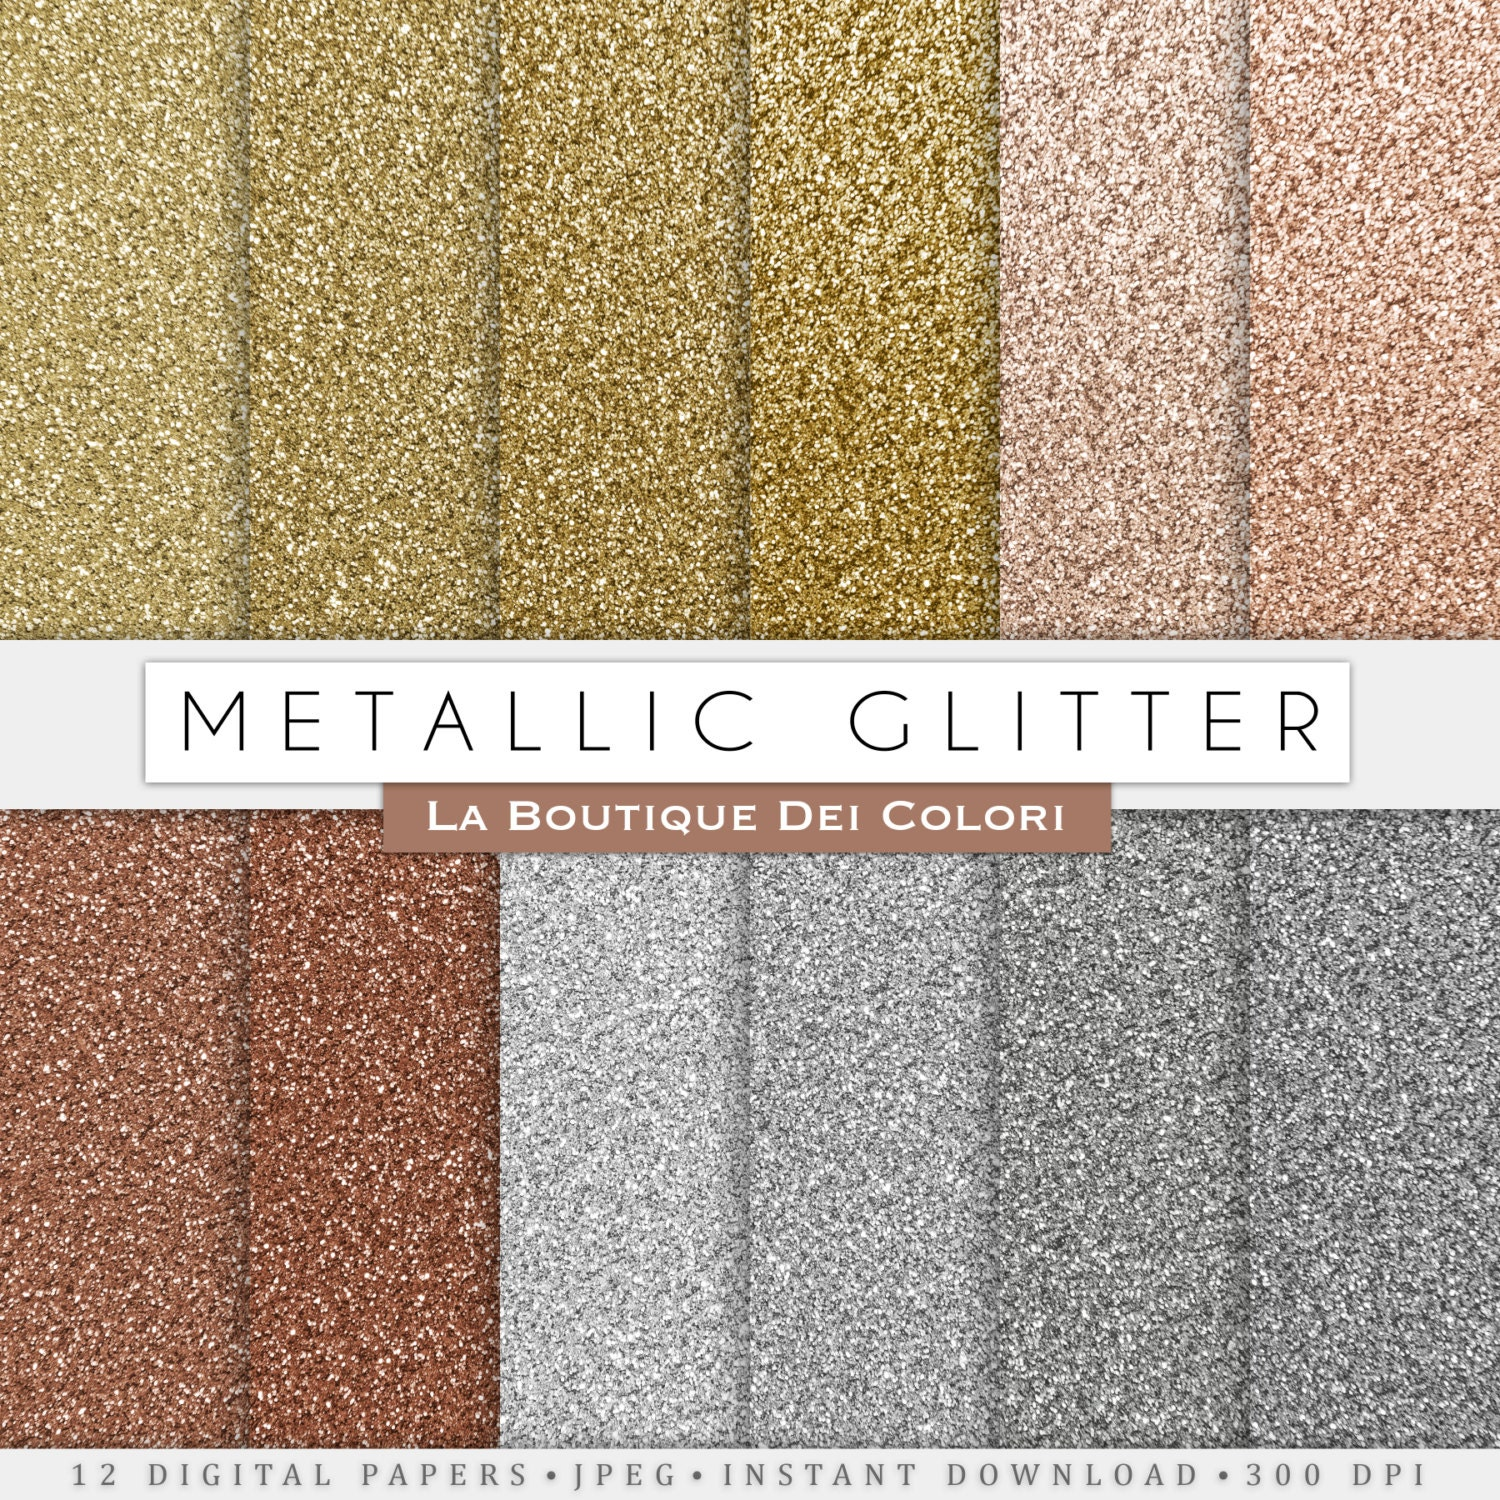 How to scrapbook with glitter paper - Metallic Glitter Digital Paper Gold Silver And Bronze Glitter Digital Papers Scrapbooking Printables Cards Commercial Use